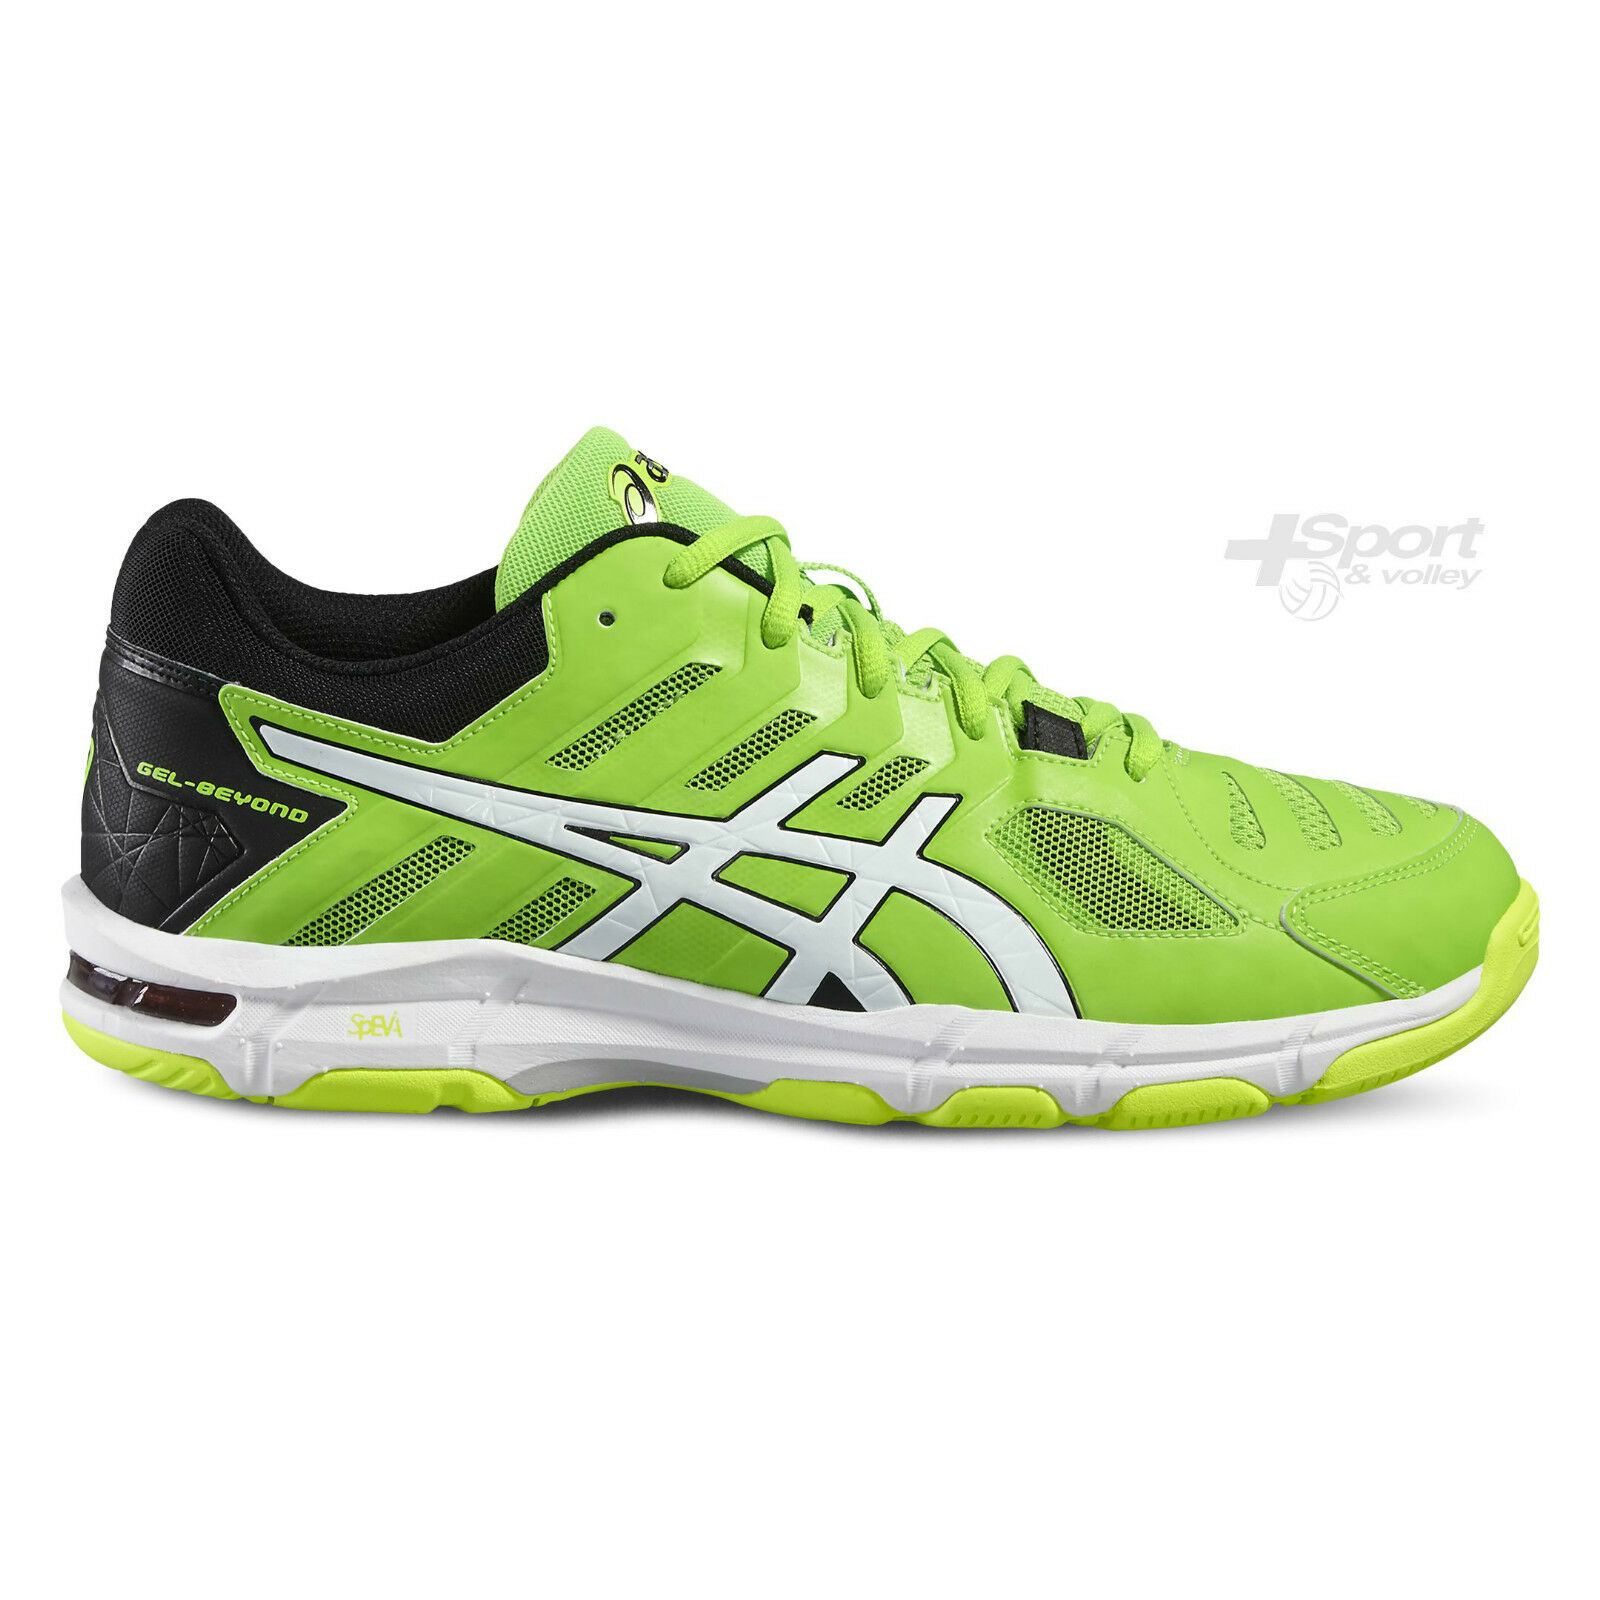 Scarpa volley Asics Gel Beyond 5 Low herren B601N 8501